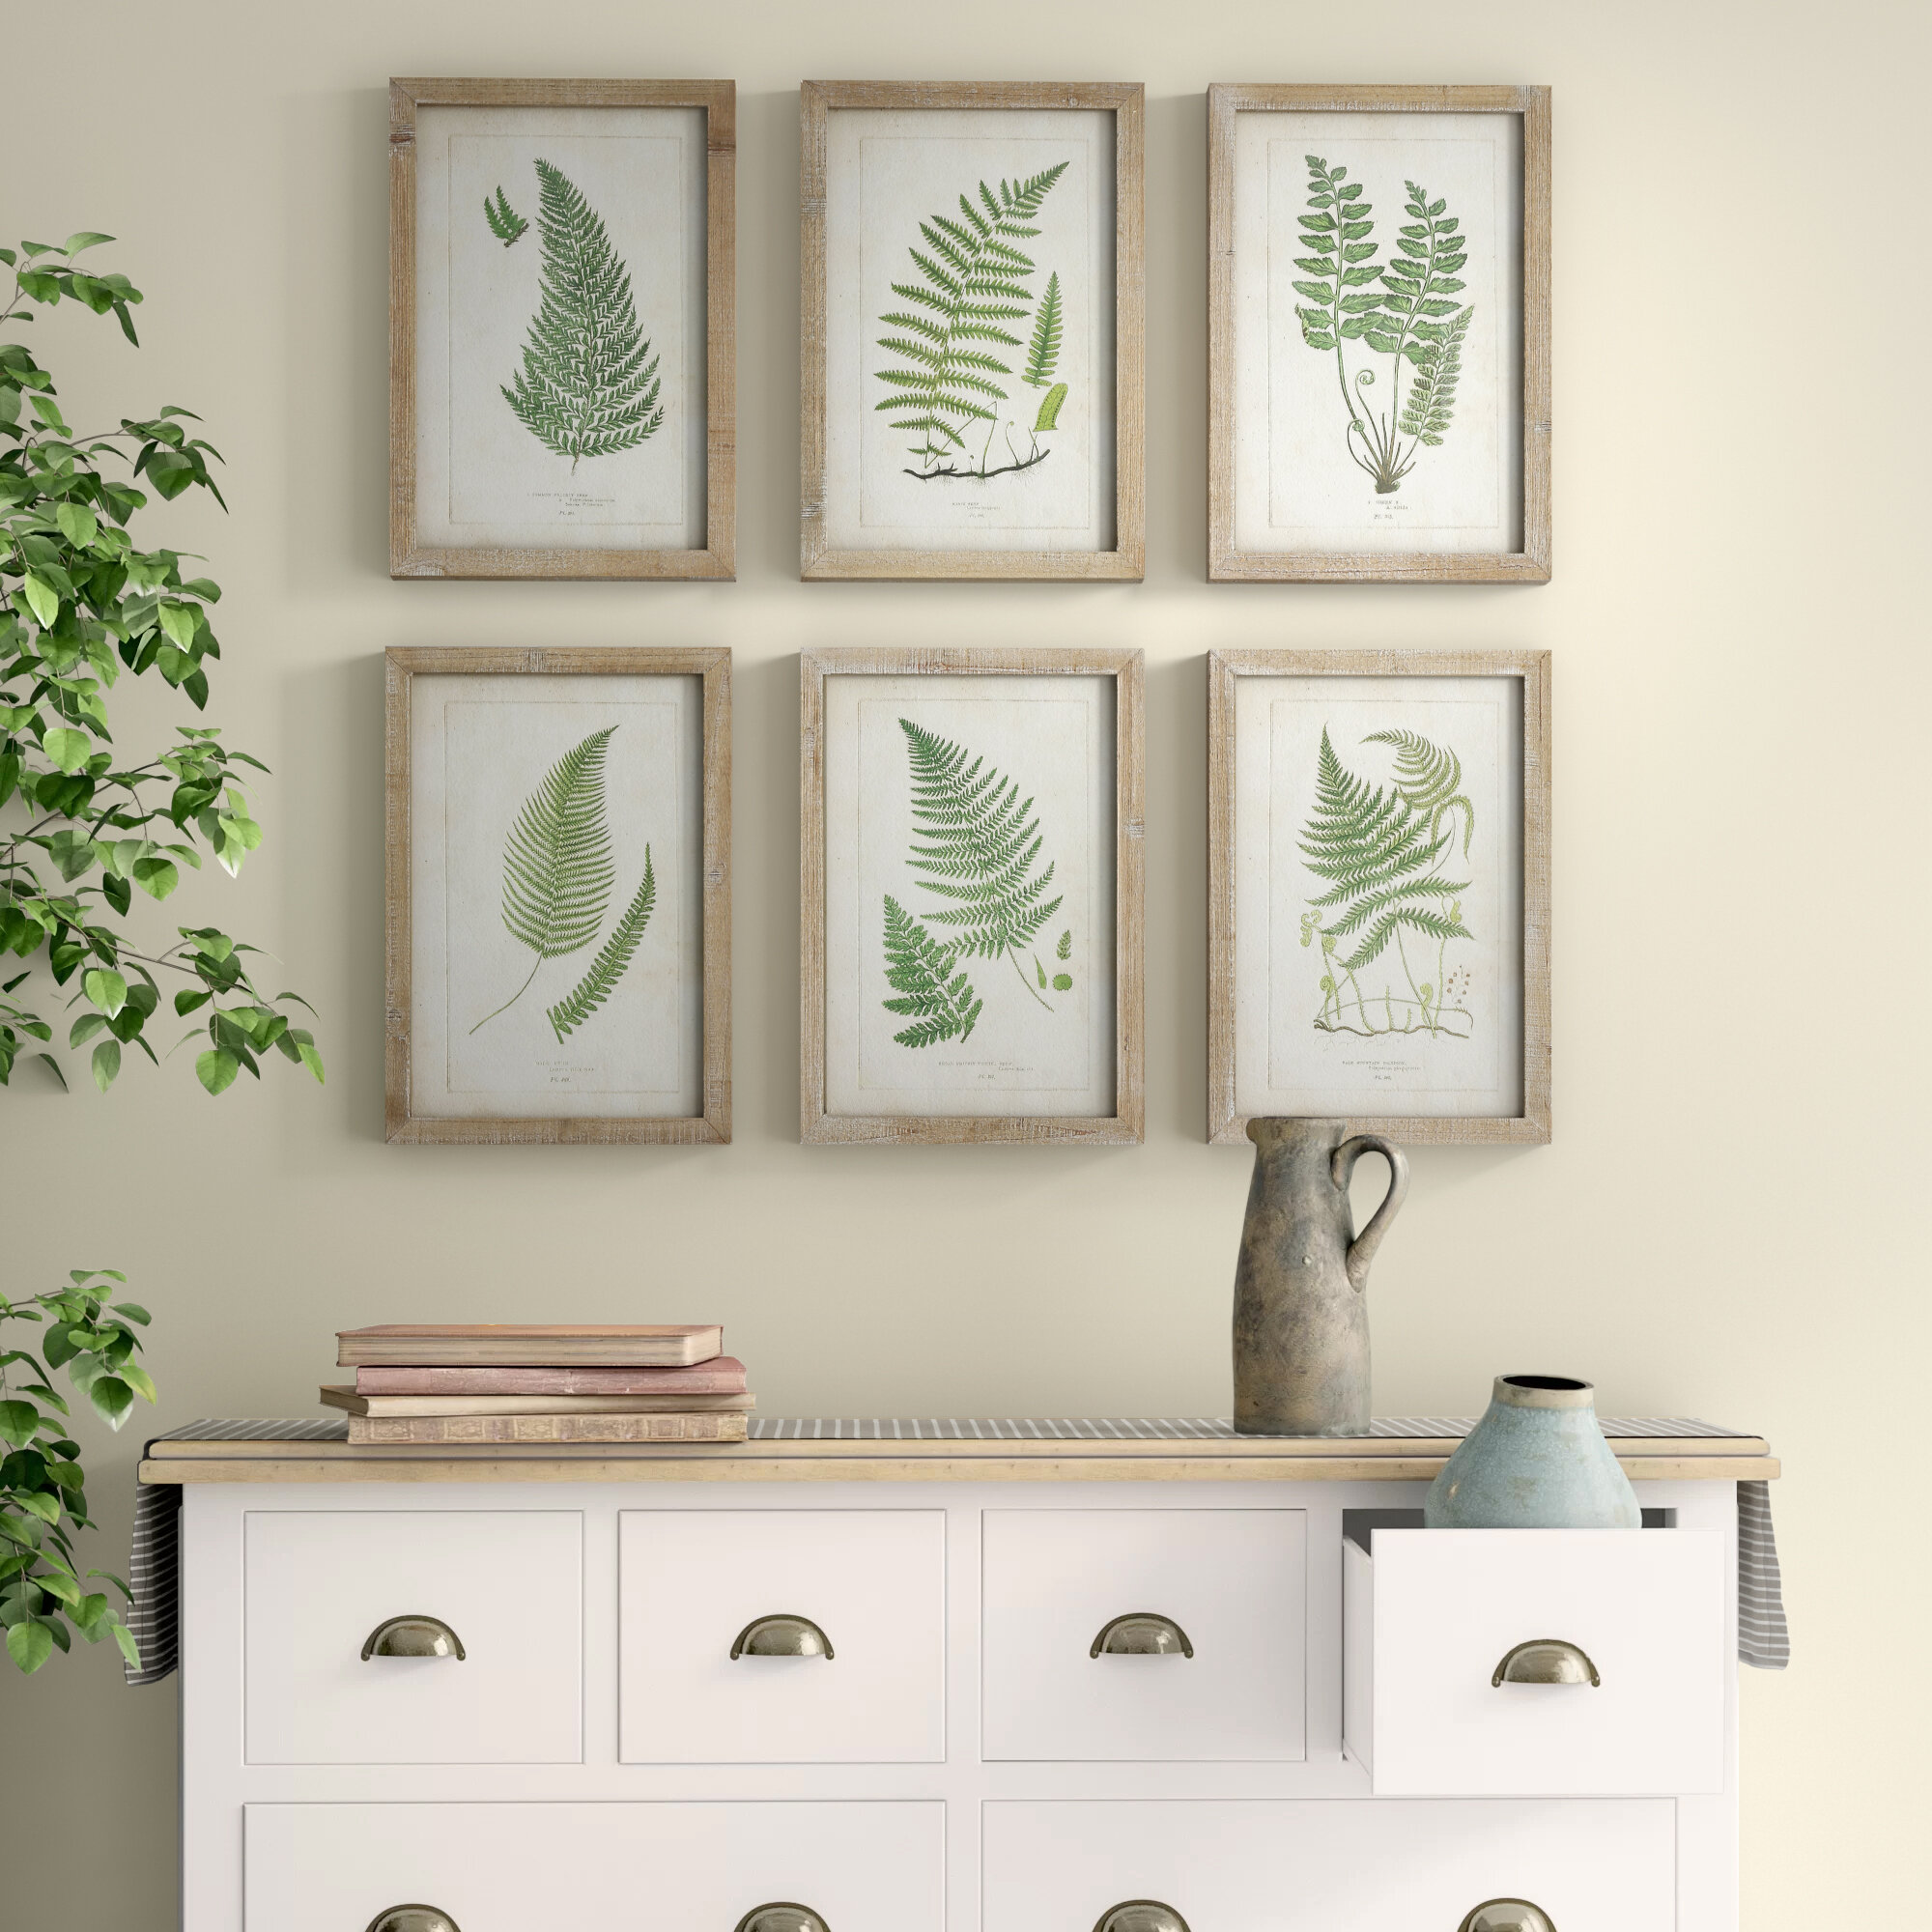 Wood Framed Wall Decor With Fern Fronds